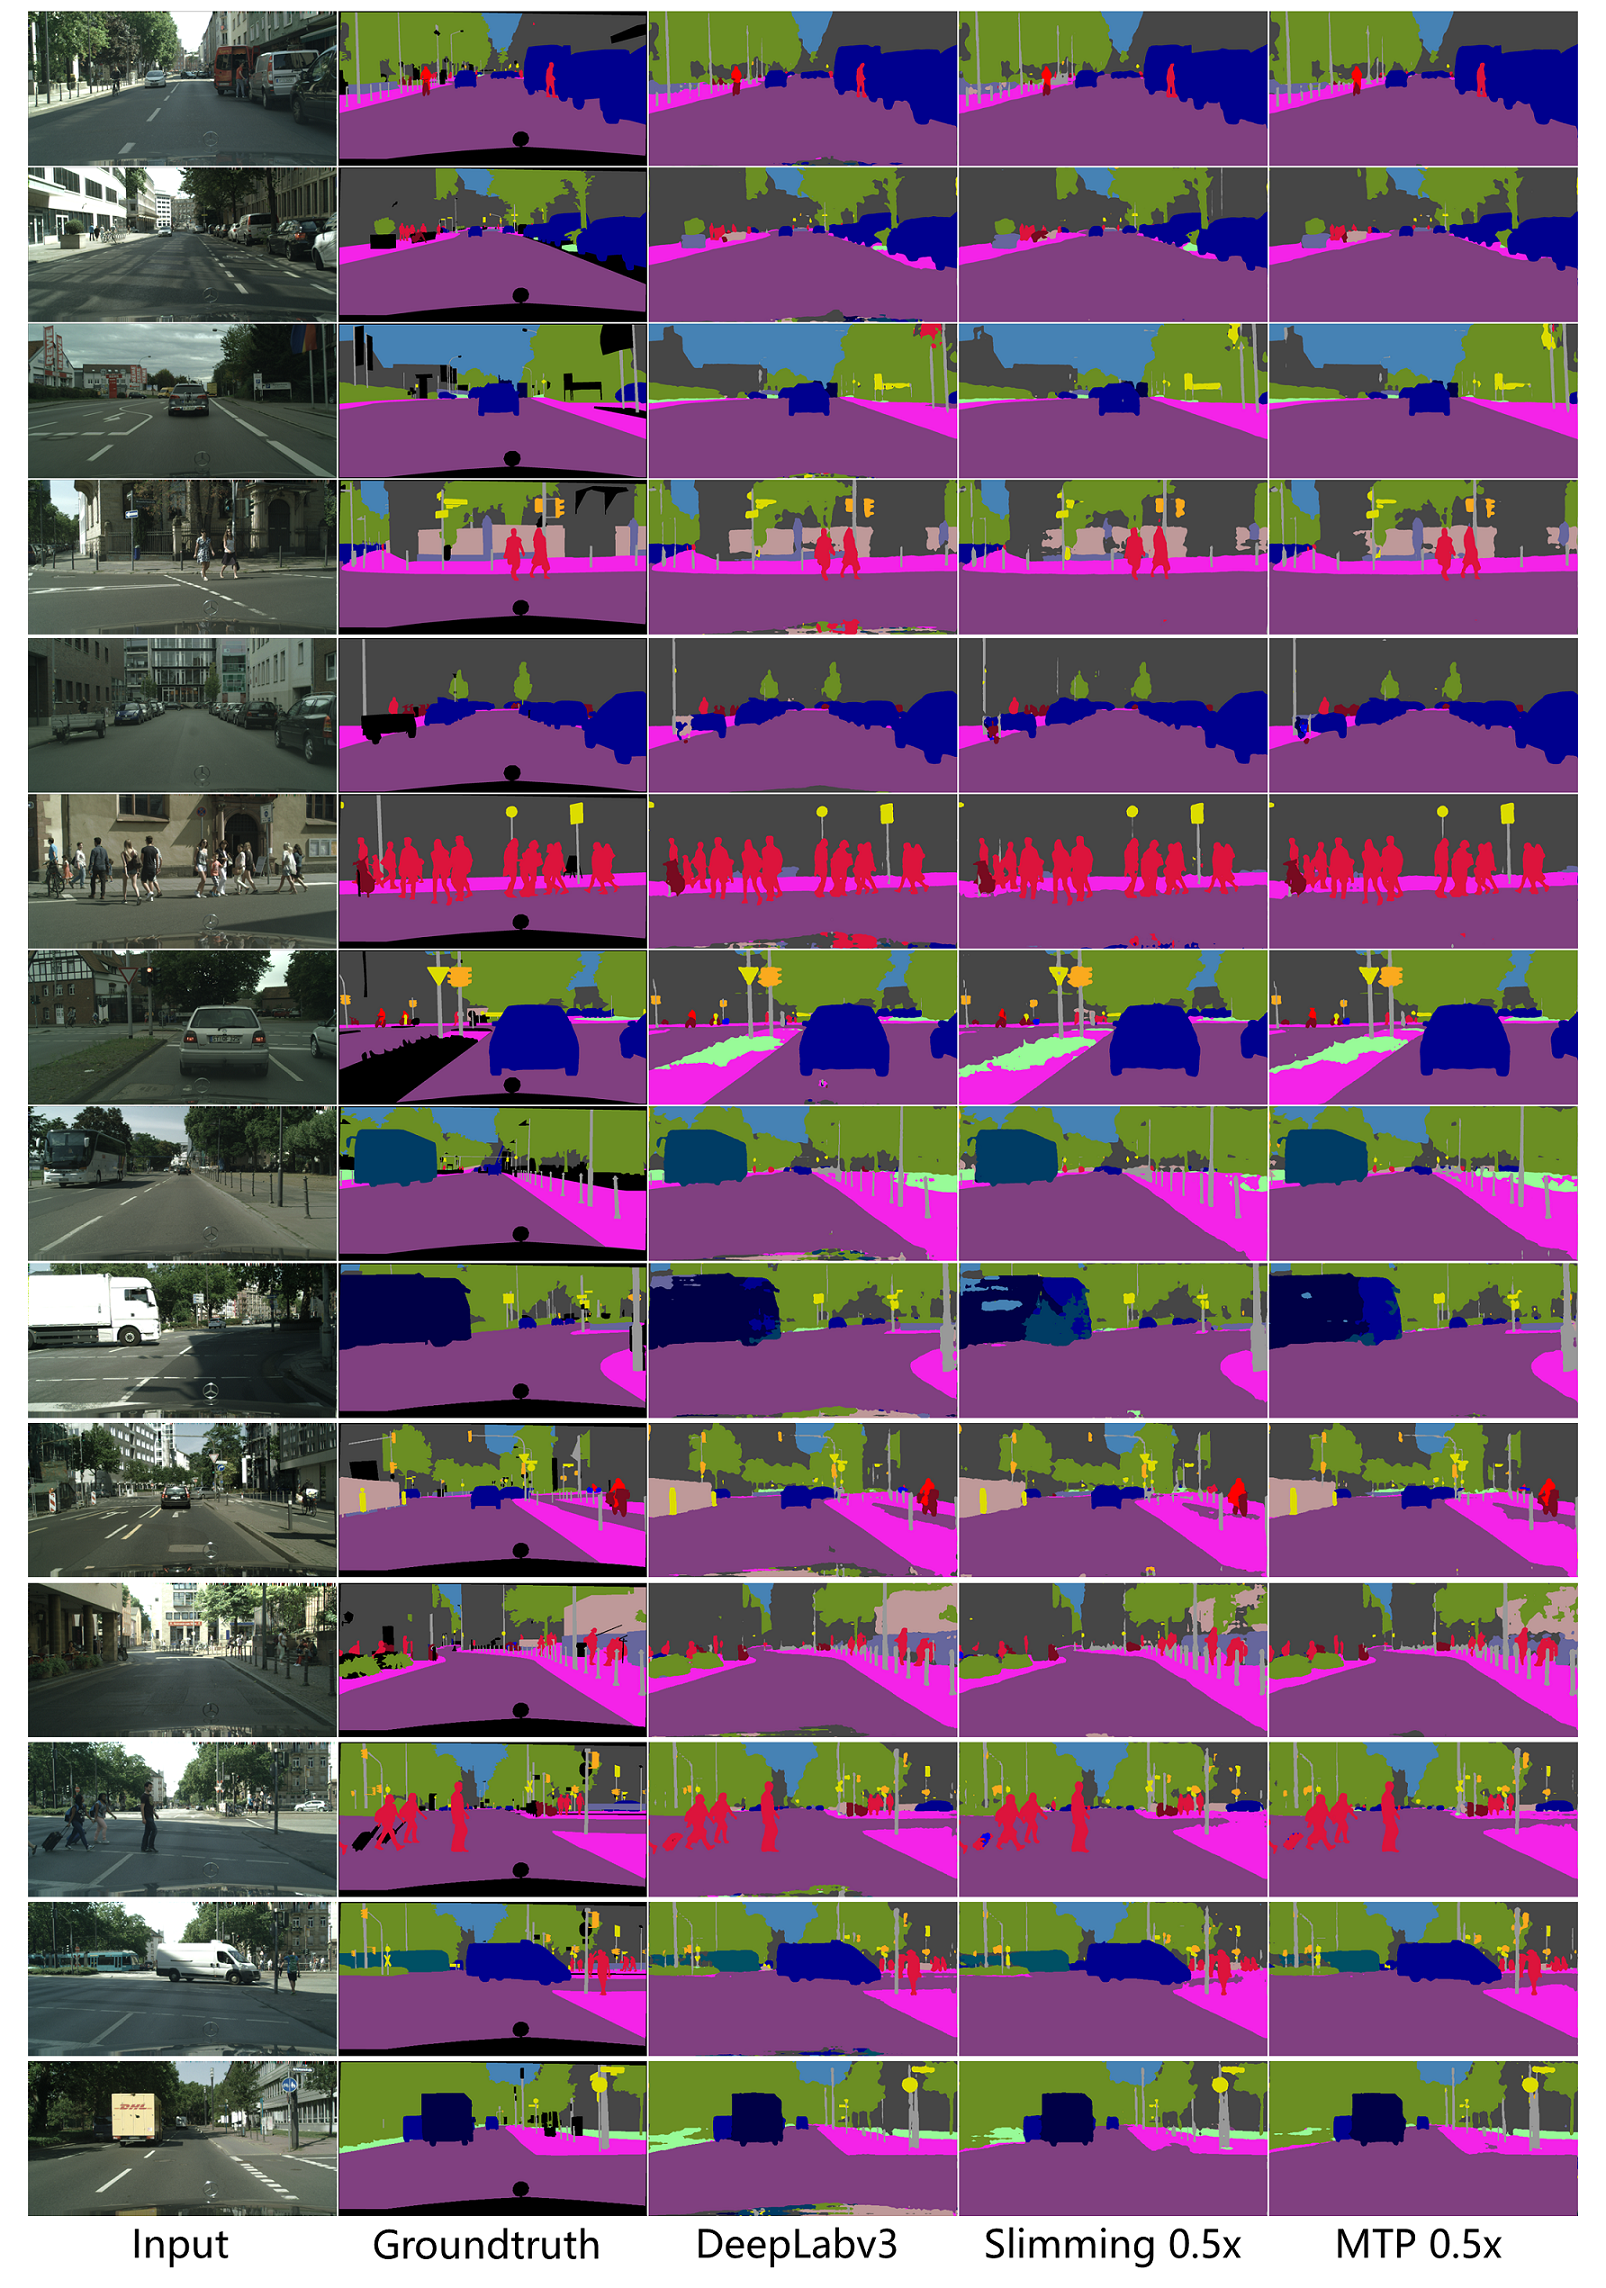 Qualitative results of different methods on Cityscapes